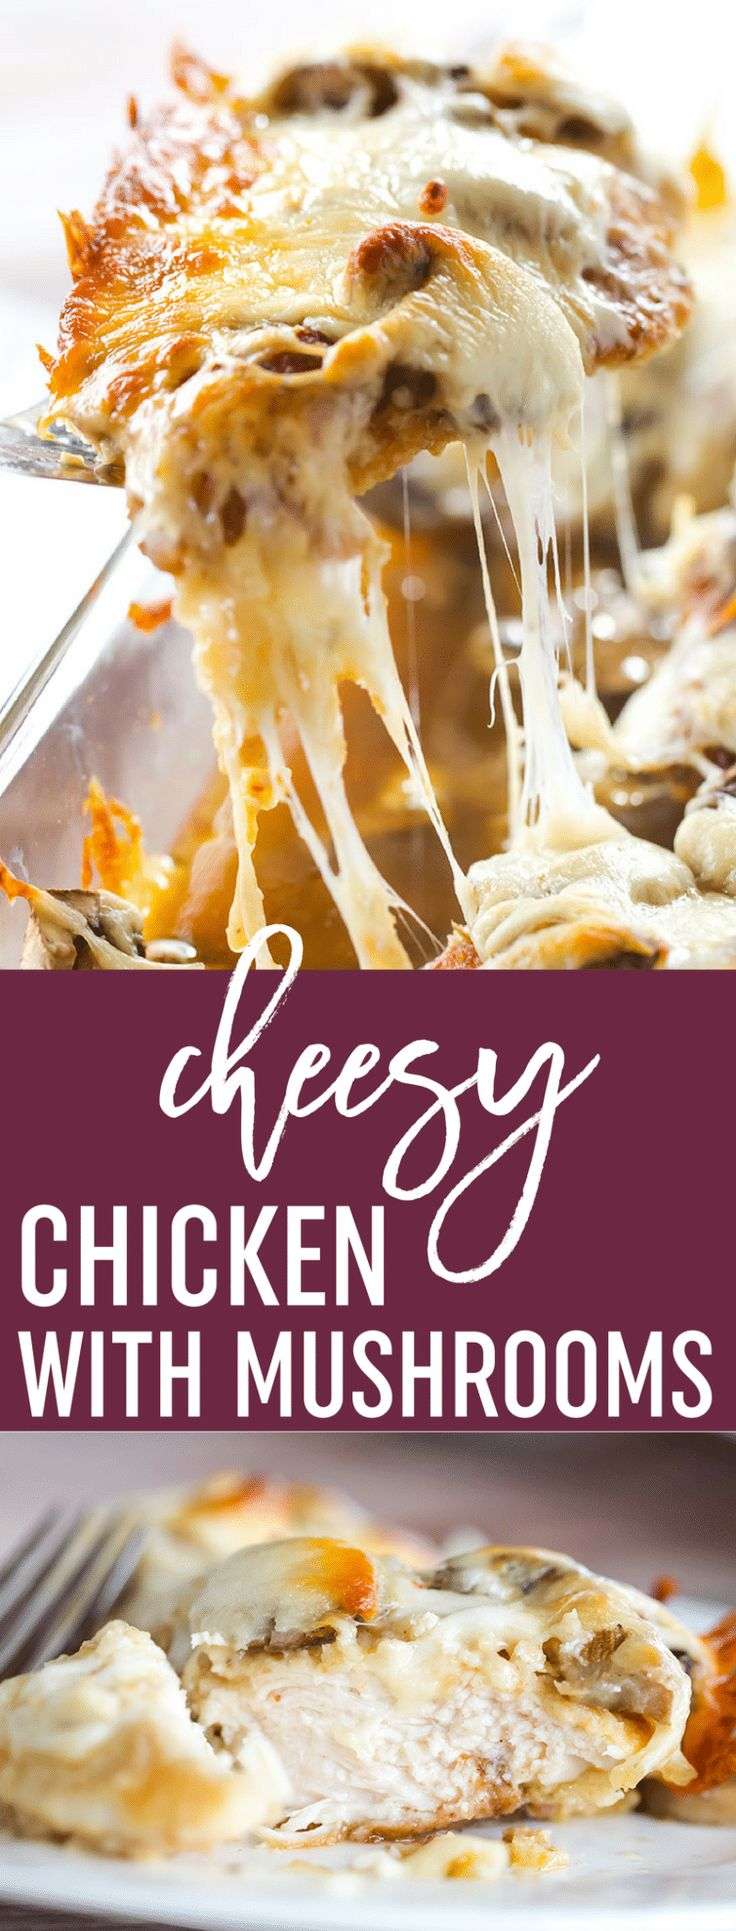 Cheesy Chicken with Mushrooms - Breaded chicken cutlets layered with sliced mushrooms and mozzarella. Easy dinner! | browneyedbaker.com